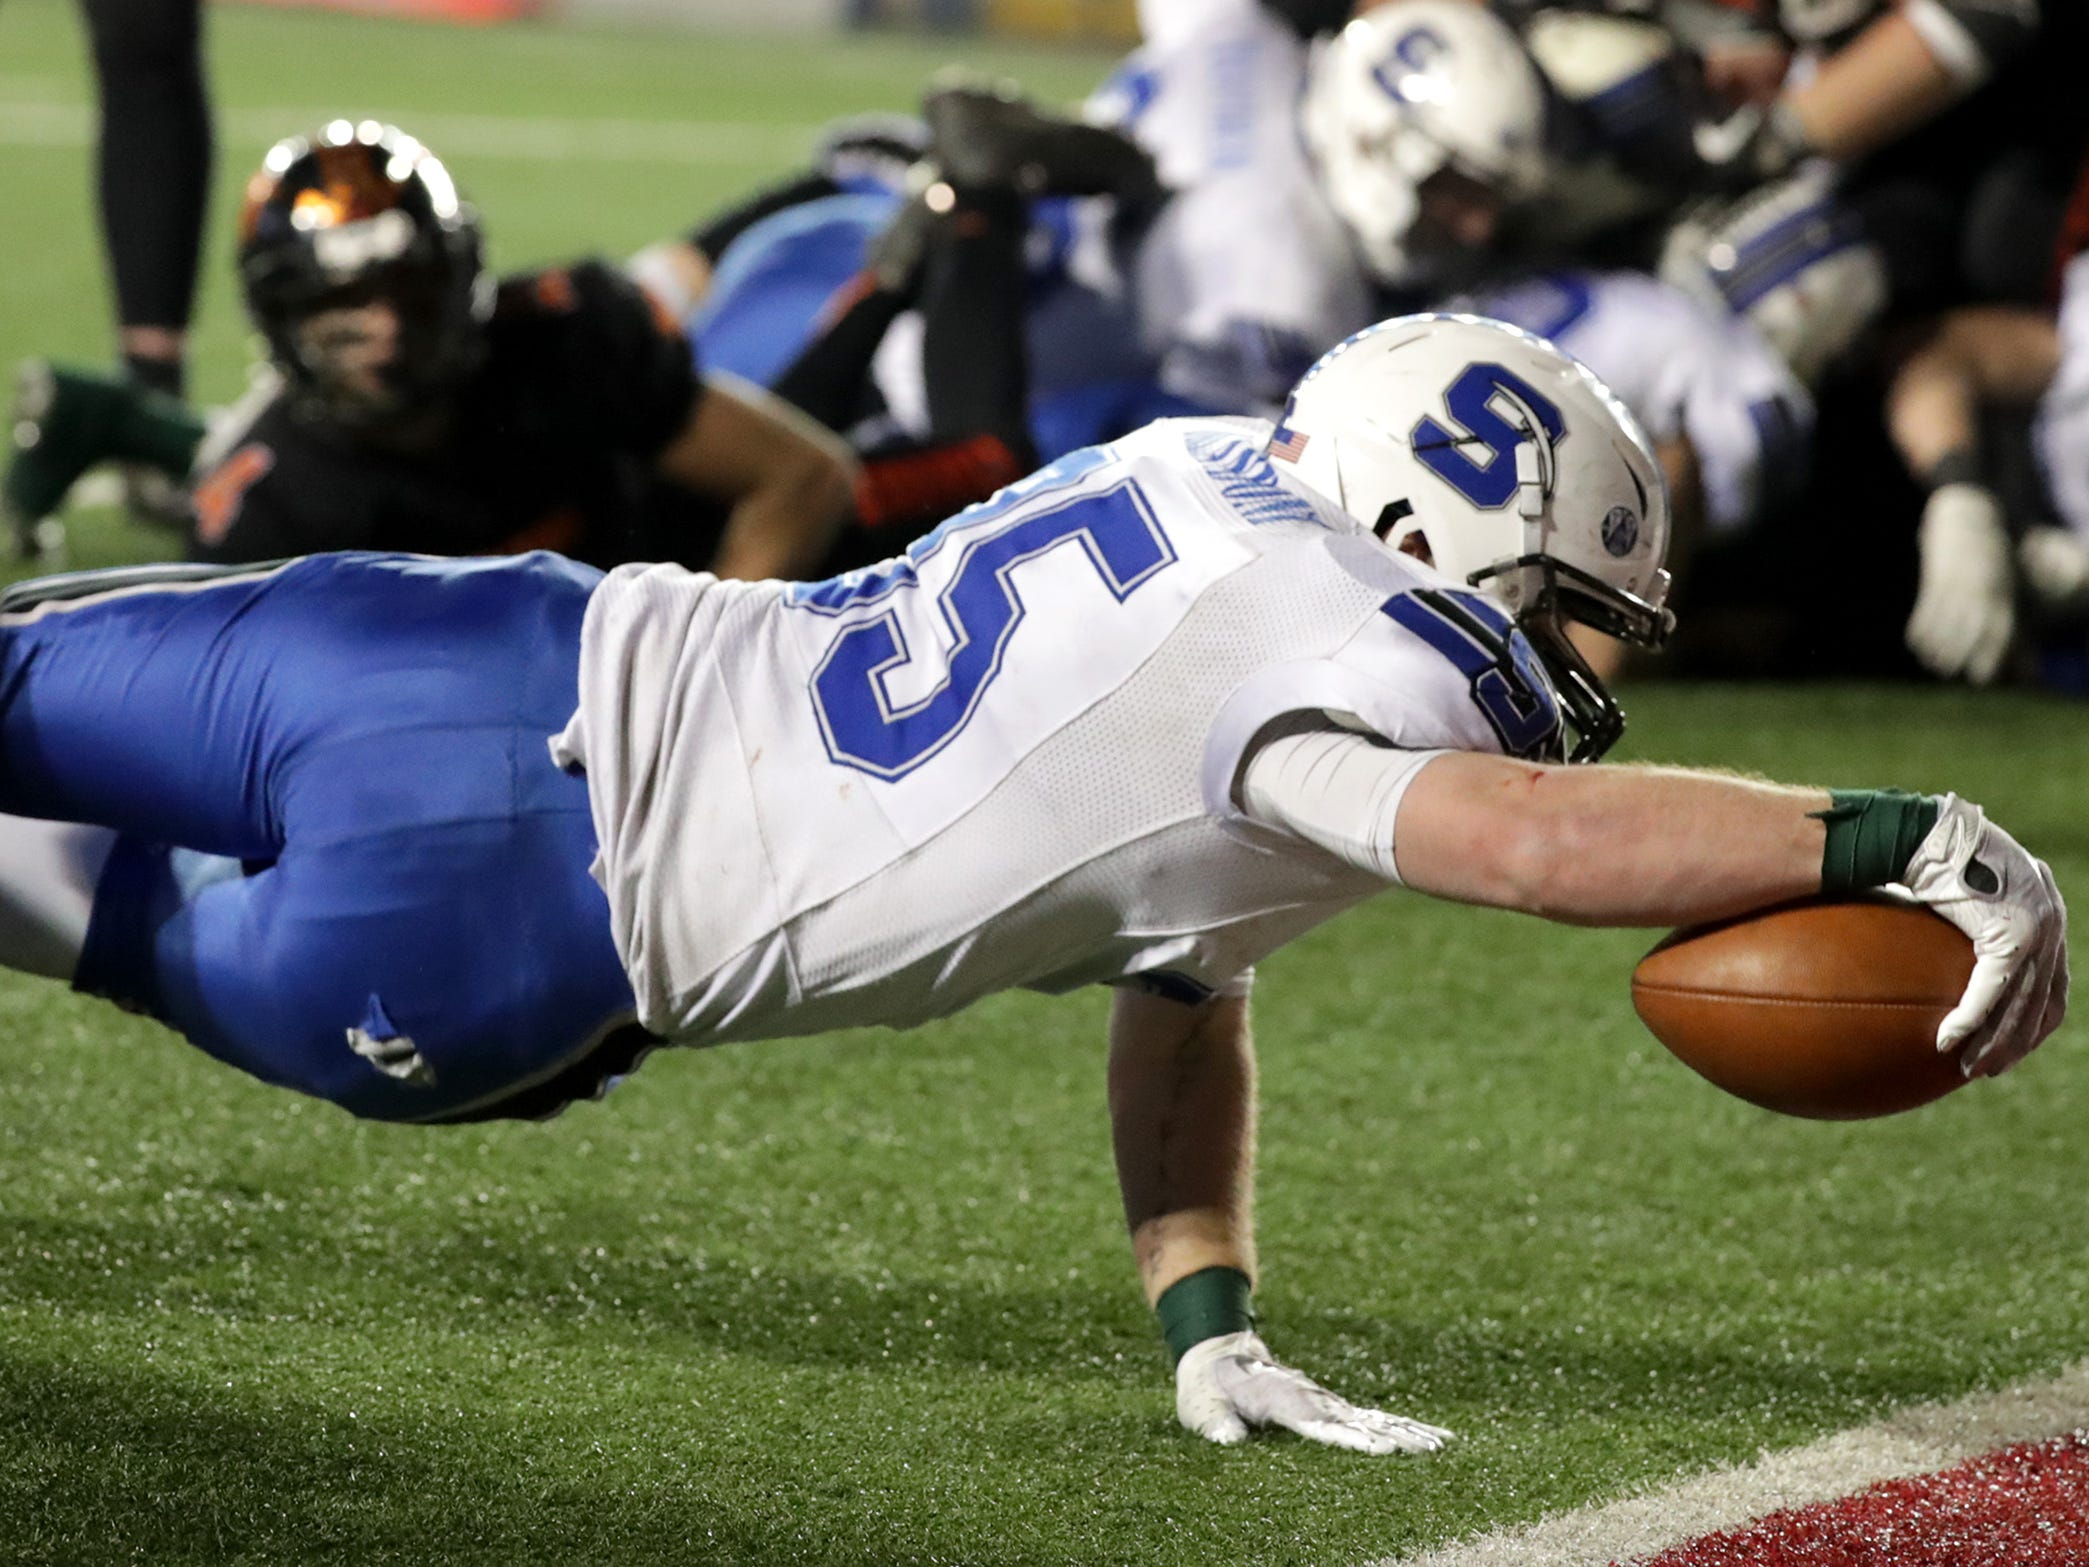 St. Mary's Springs Academy's #35 Marcus Orlandoni scores a go ahead touchdown in the fourth quarter against Stratford High School during the WIAA Division  5 state championship football game on Thursday, November 15, 2018, at Camp Randall in Madison, Wis.